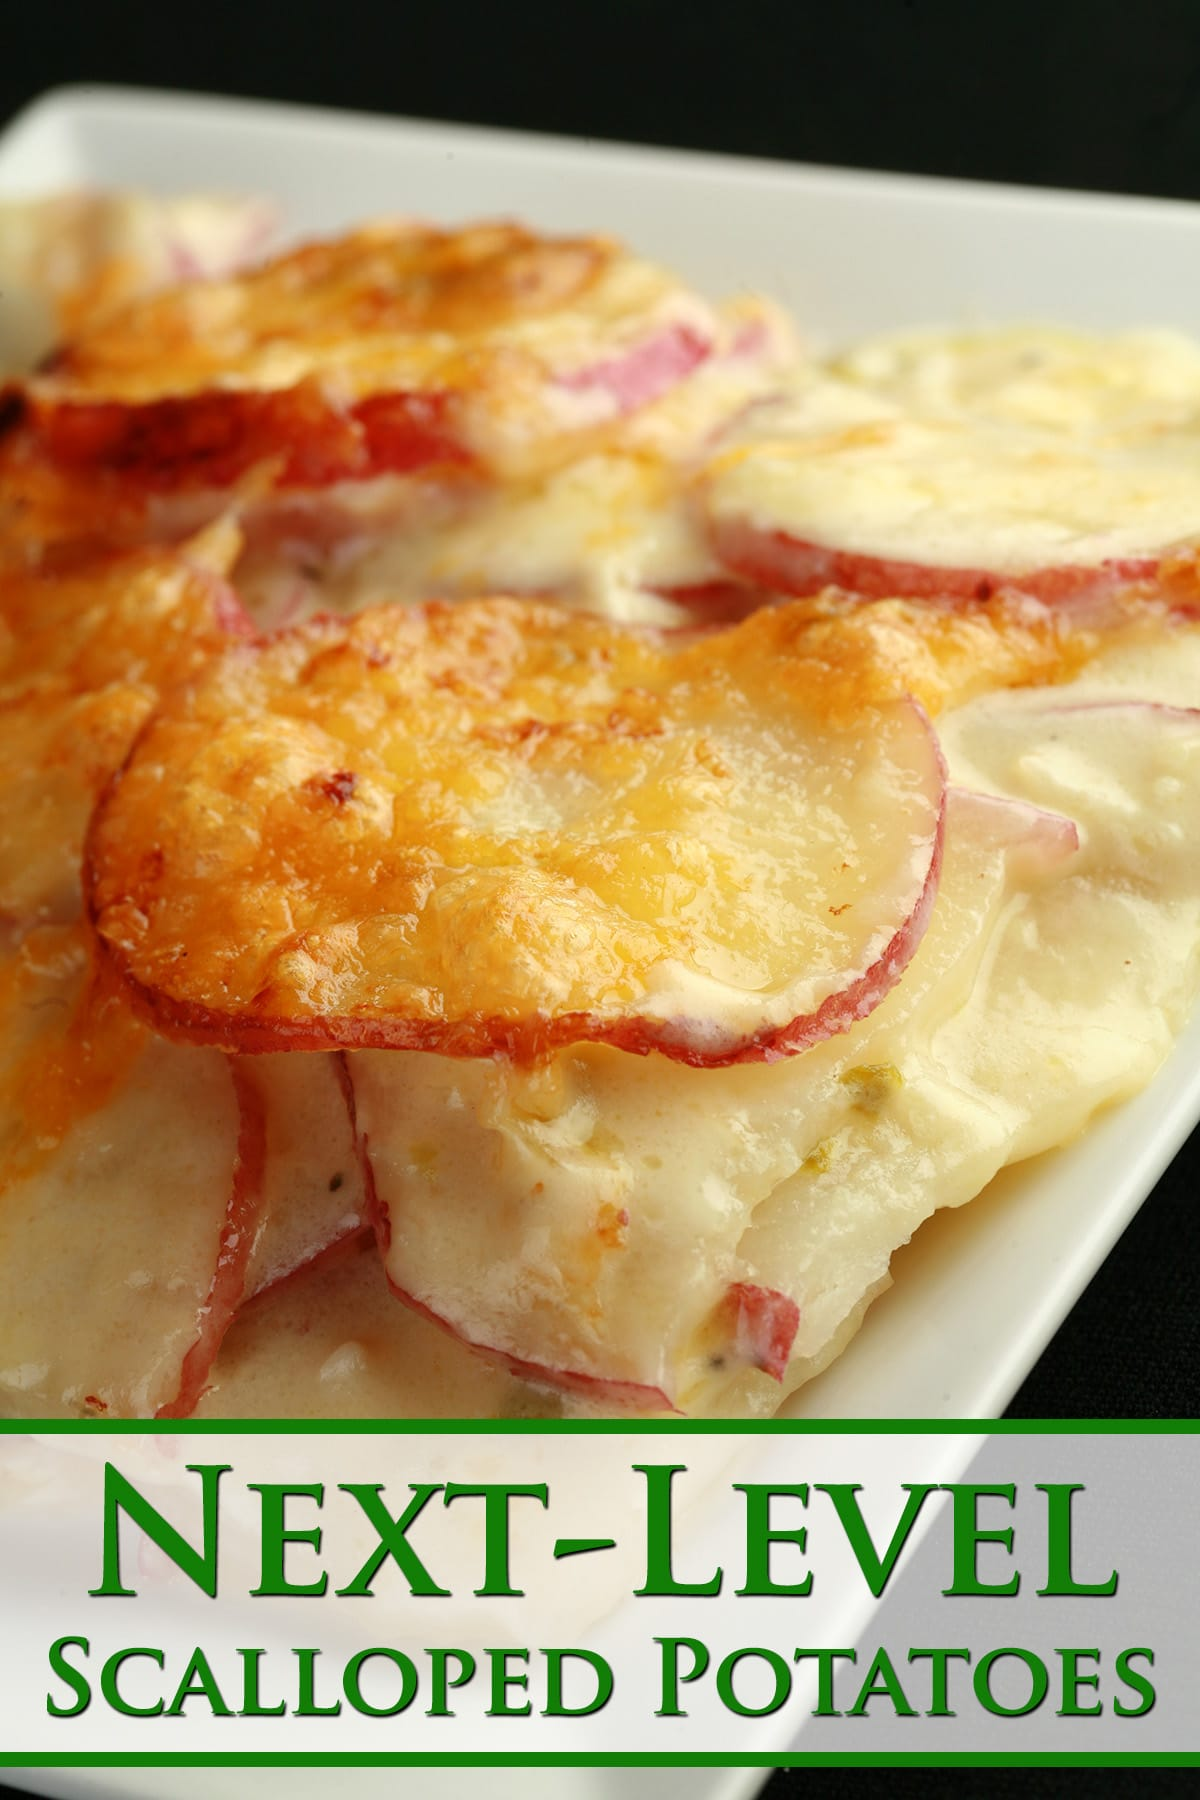 A close up view of a plate of next-levek scalloped potatoes. Bits of Jalapeno are visible in the white sauce.